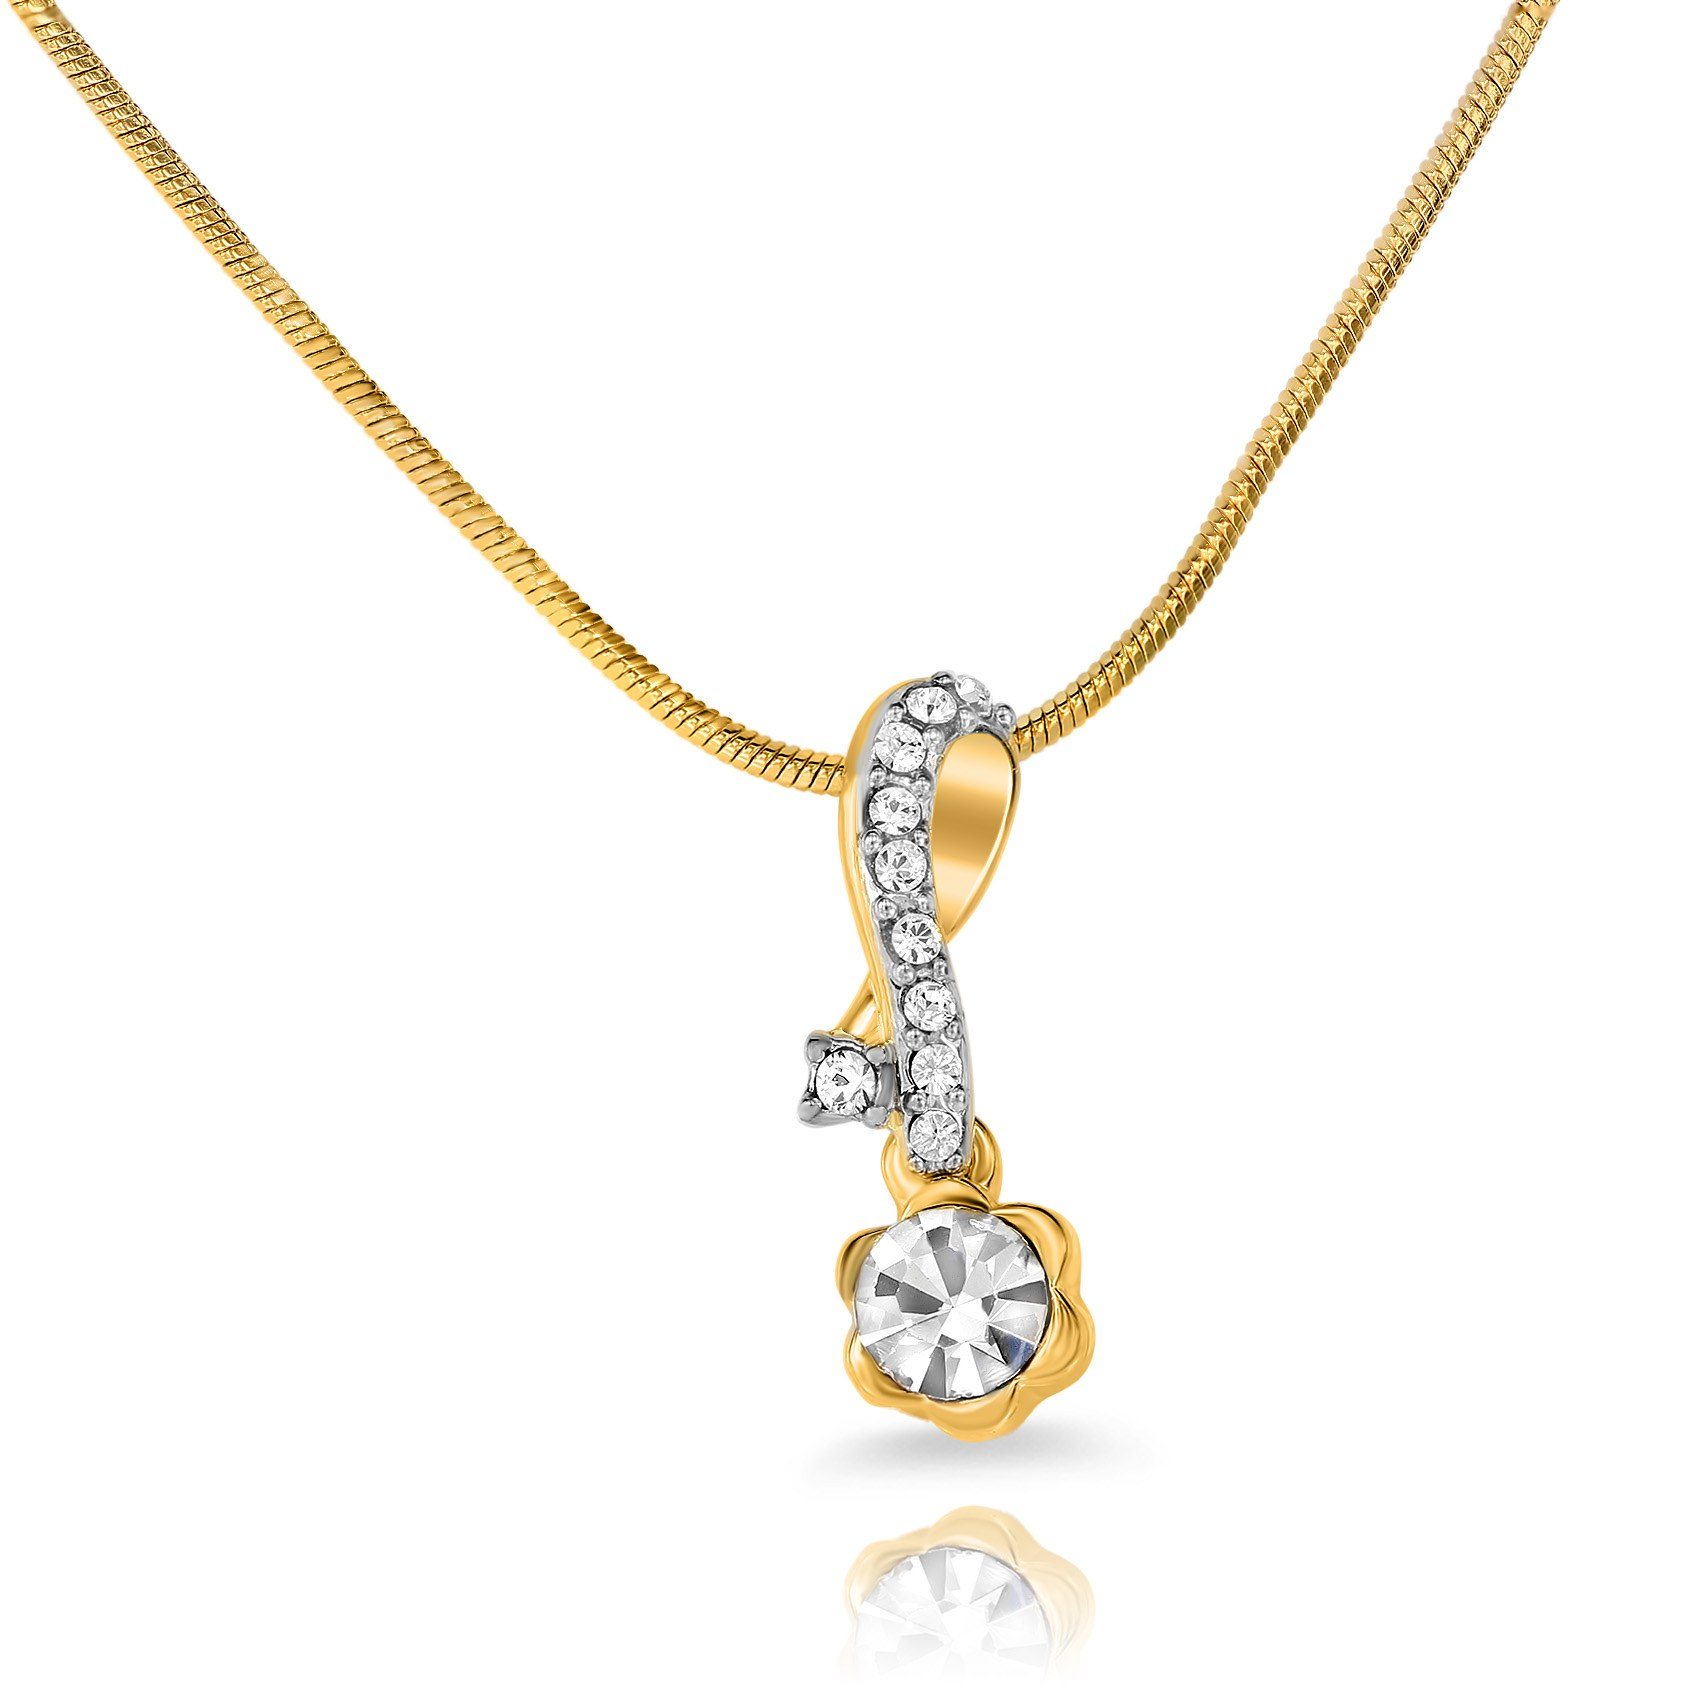 Mahi Gold Plated Pristine Beauty Pendant With Crystals